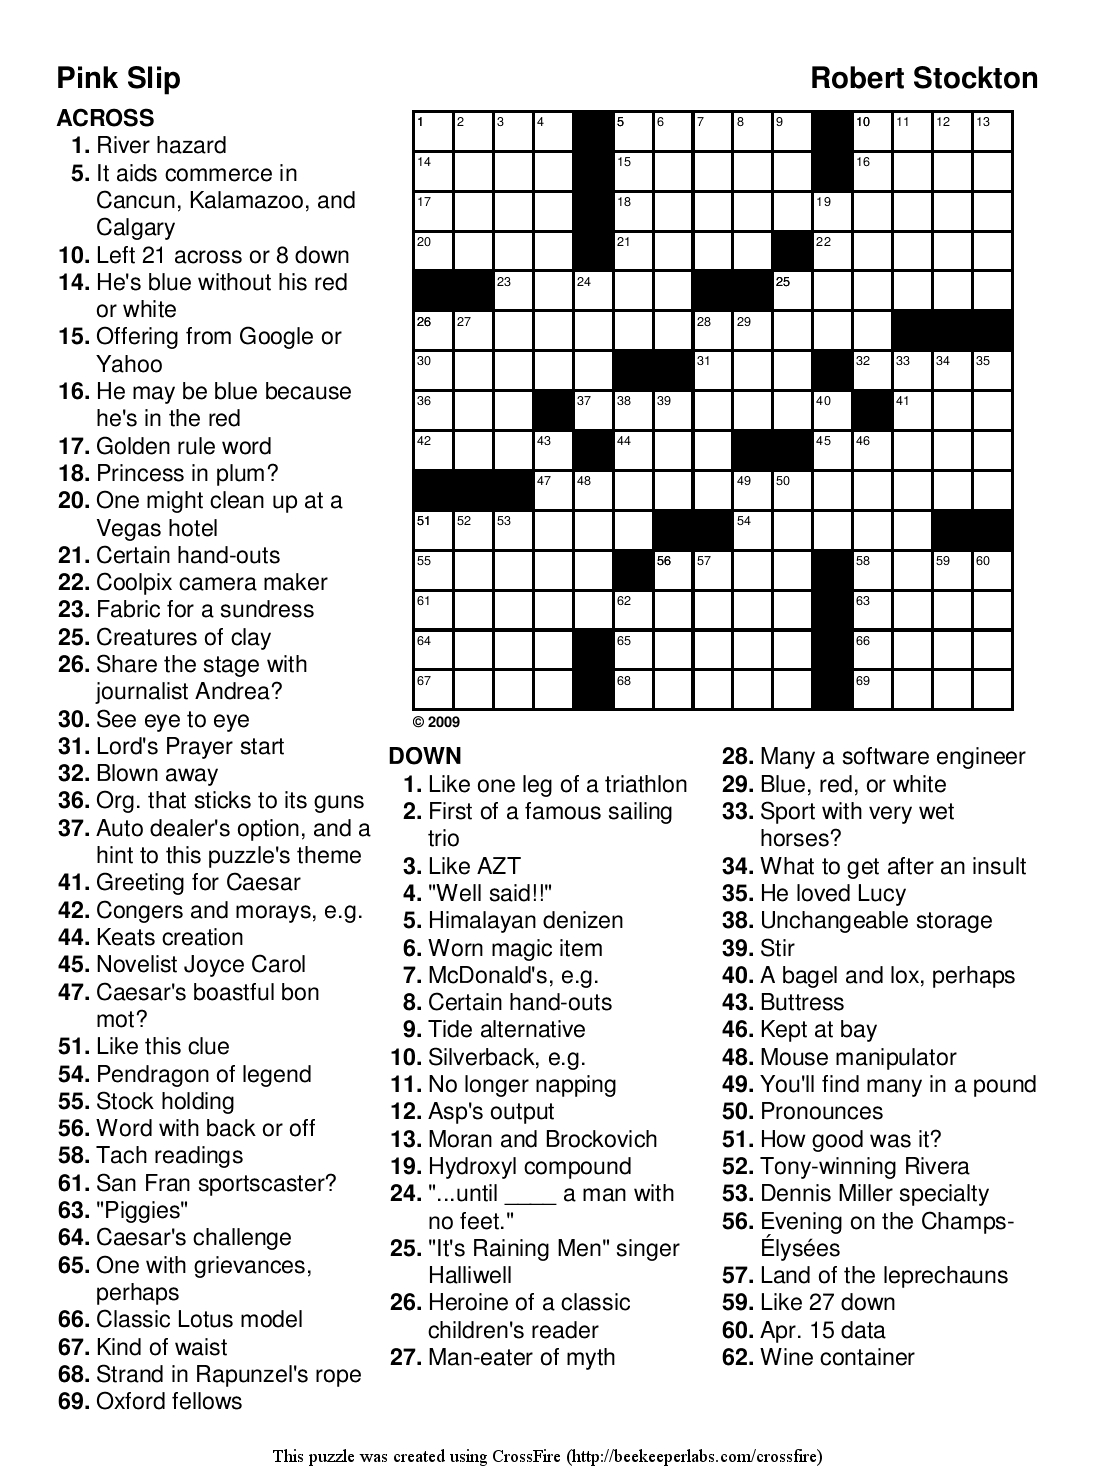 Printable Puzzles For Adults | Easy Word Puzzles Printable Festivals - Easy Printable Crossword Puzzles For Adults